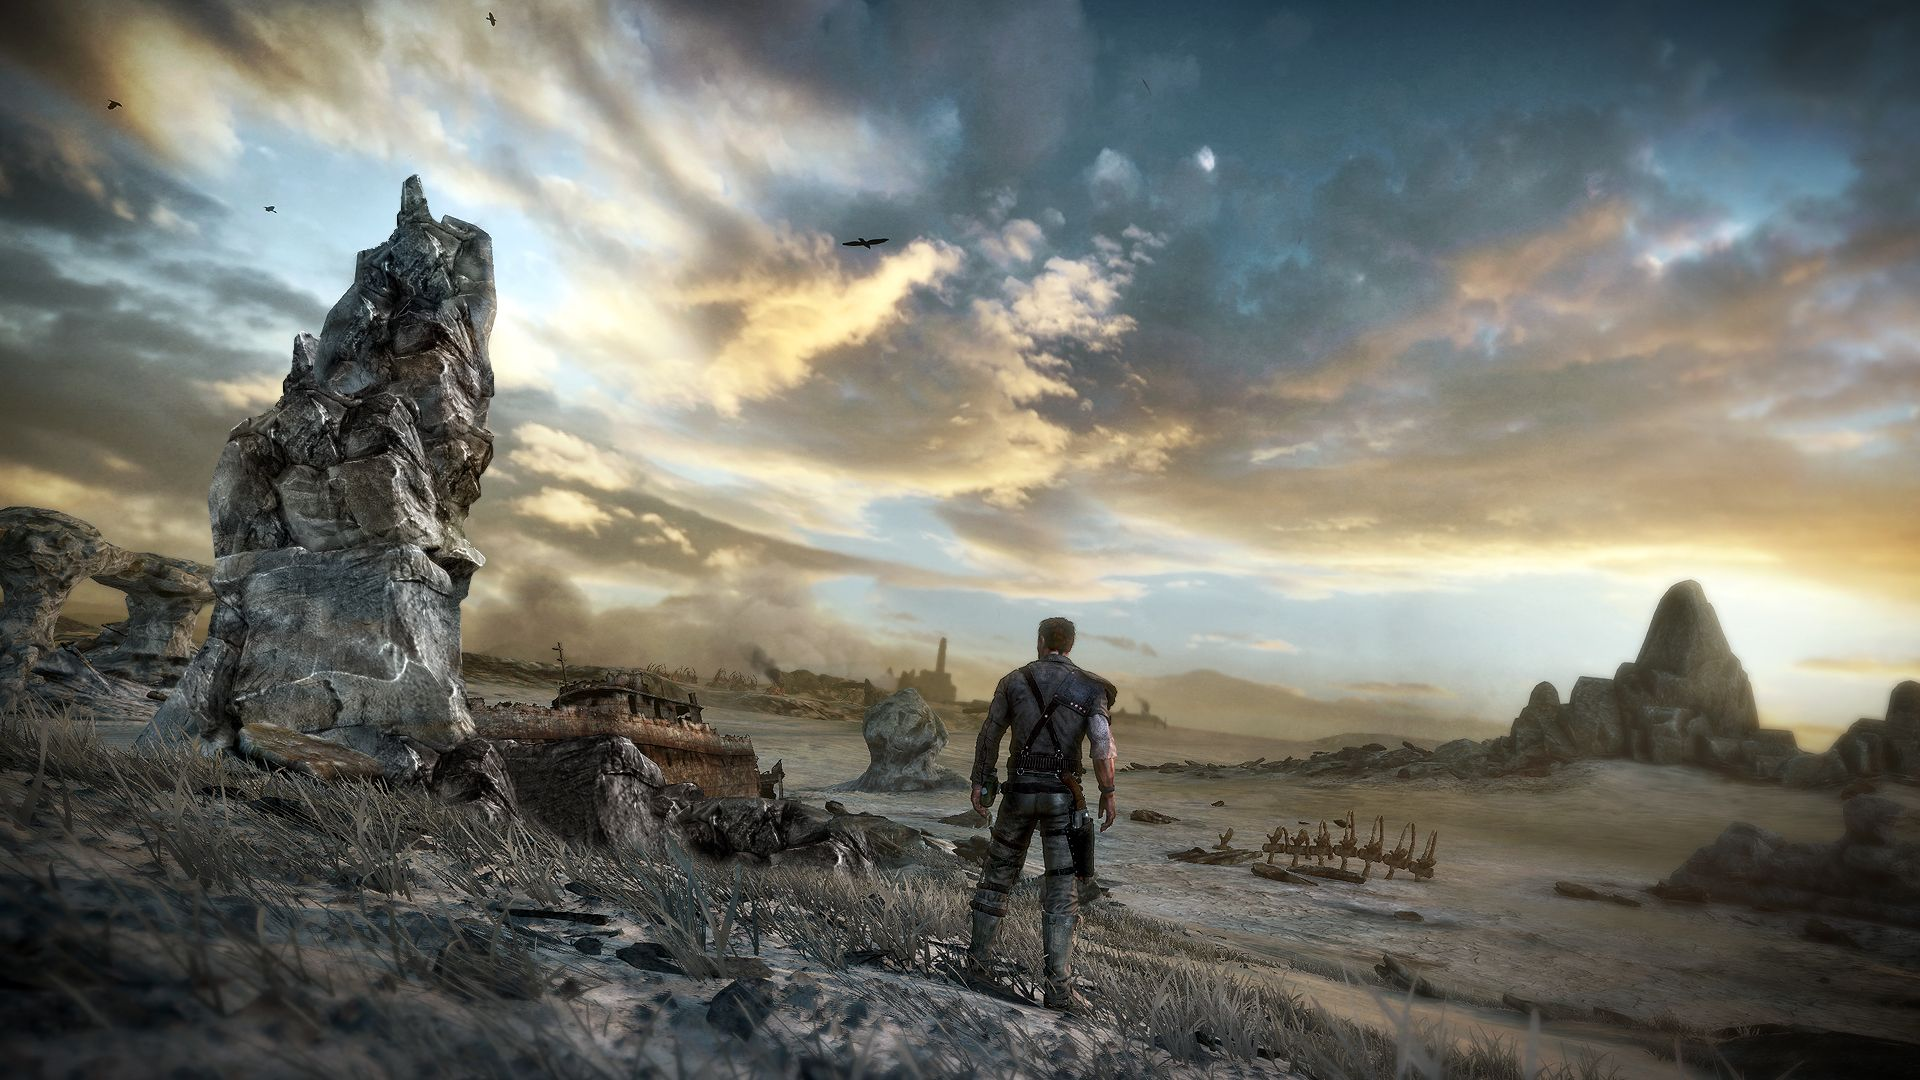 Mad Max Developers Cryptic Towards the Possibility of Second